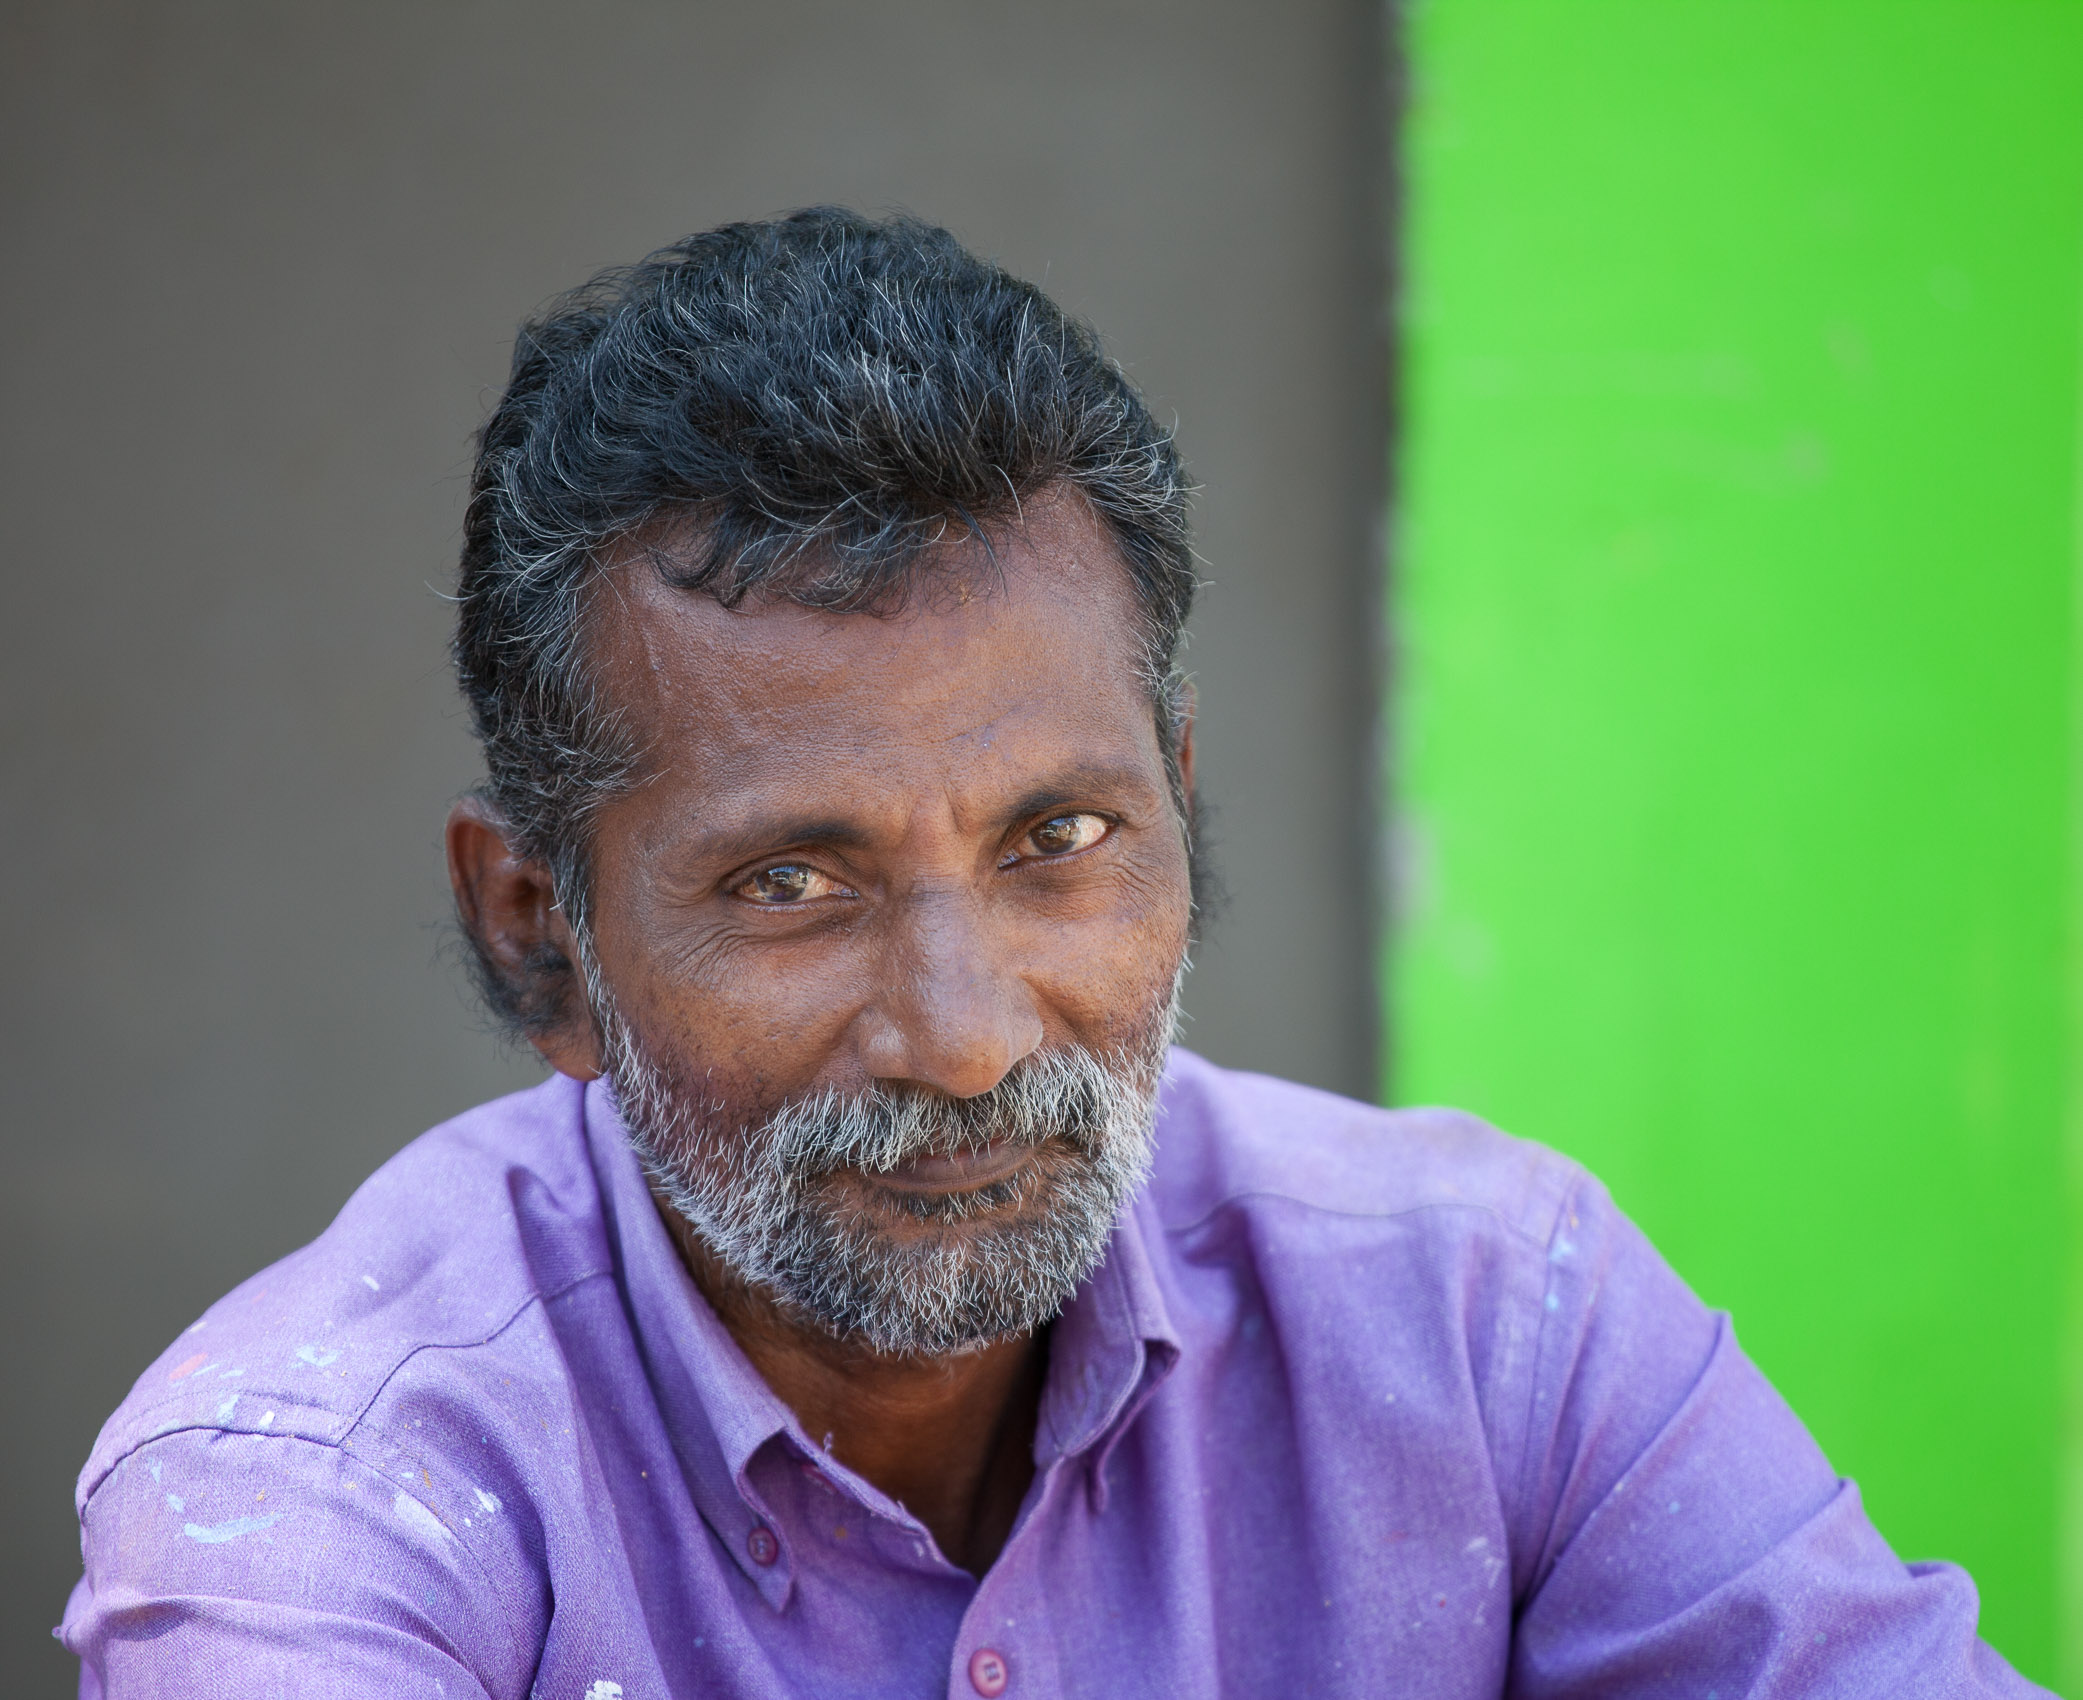 India-Kerala-Cochin-Purple-Shirt-Green-Wall